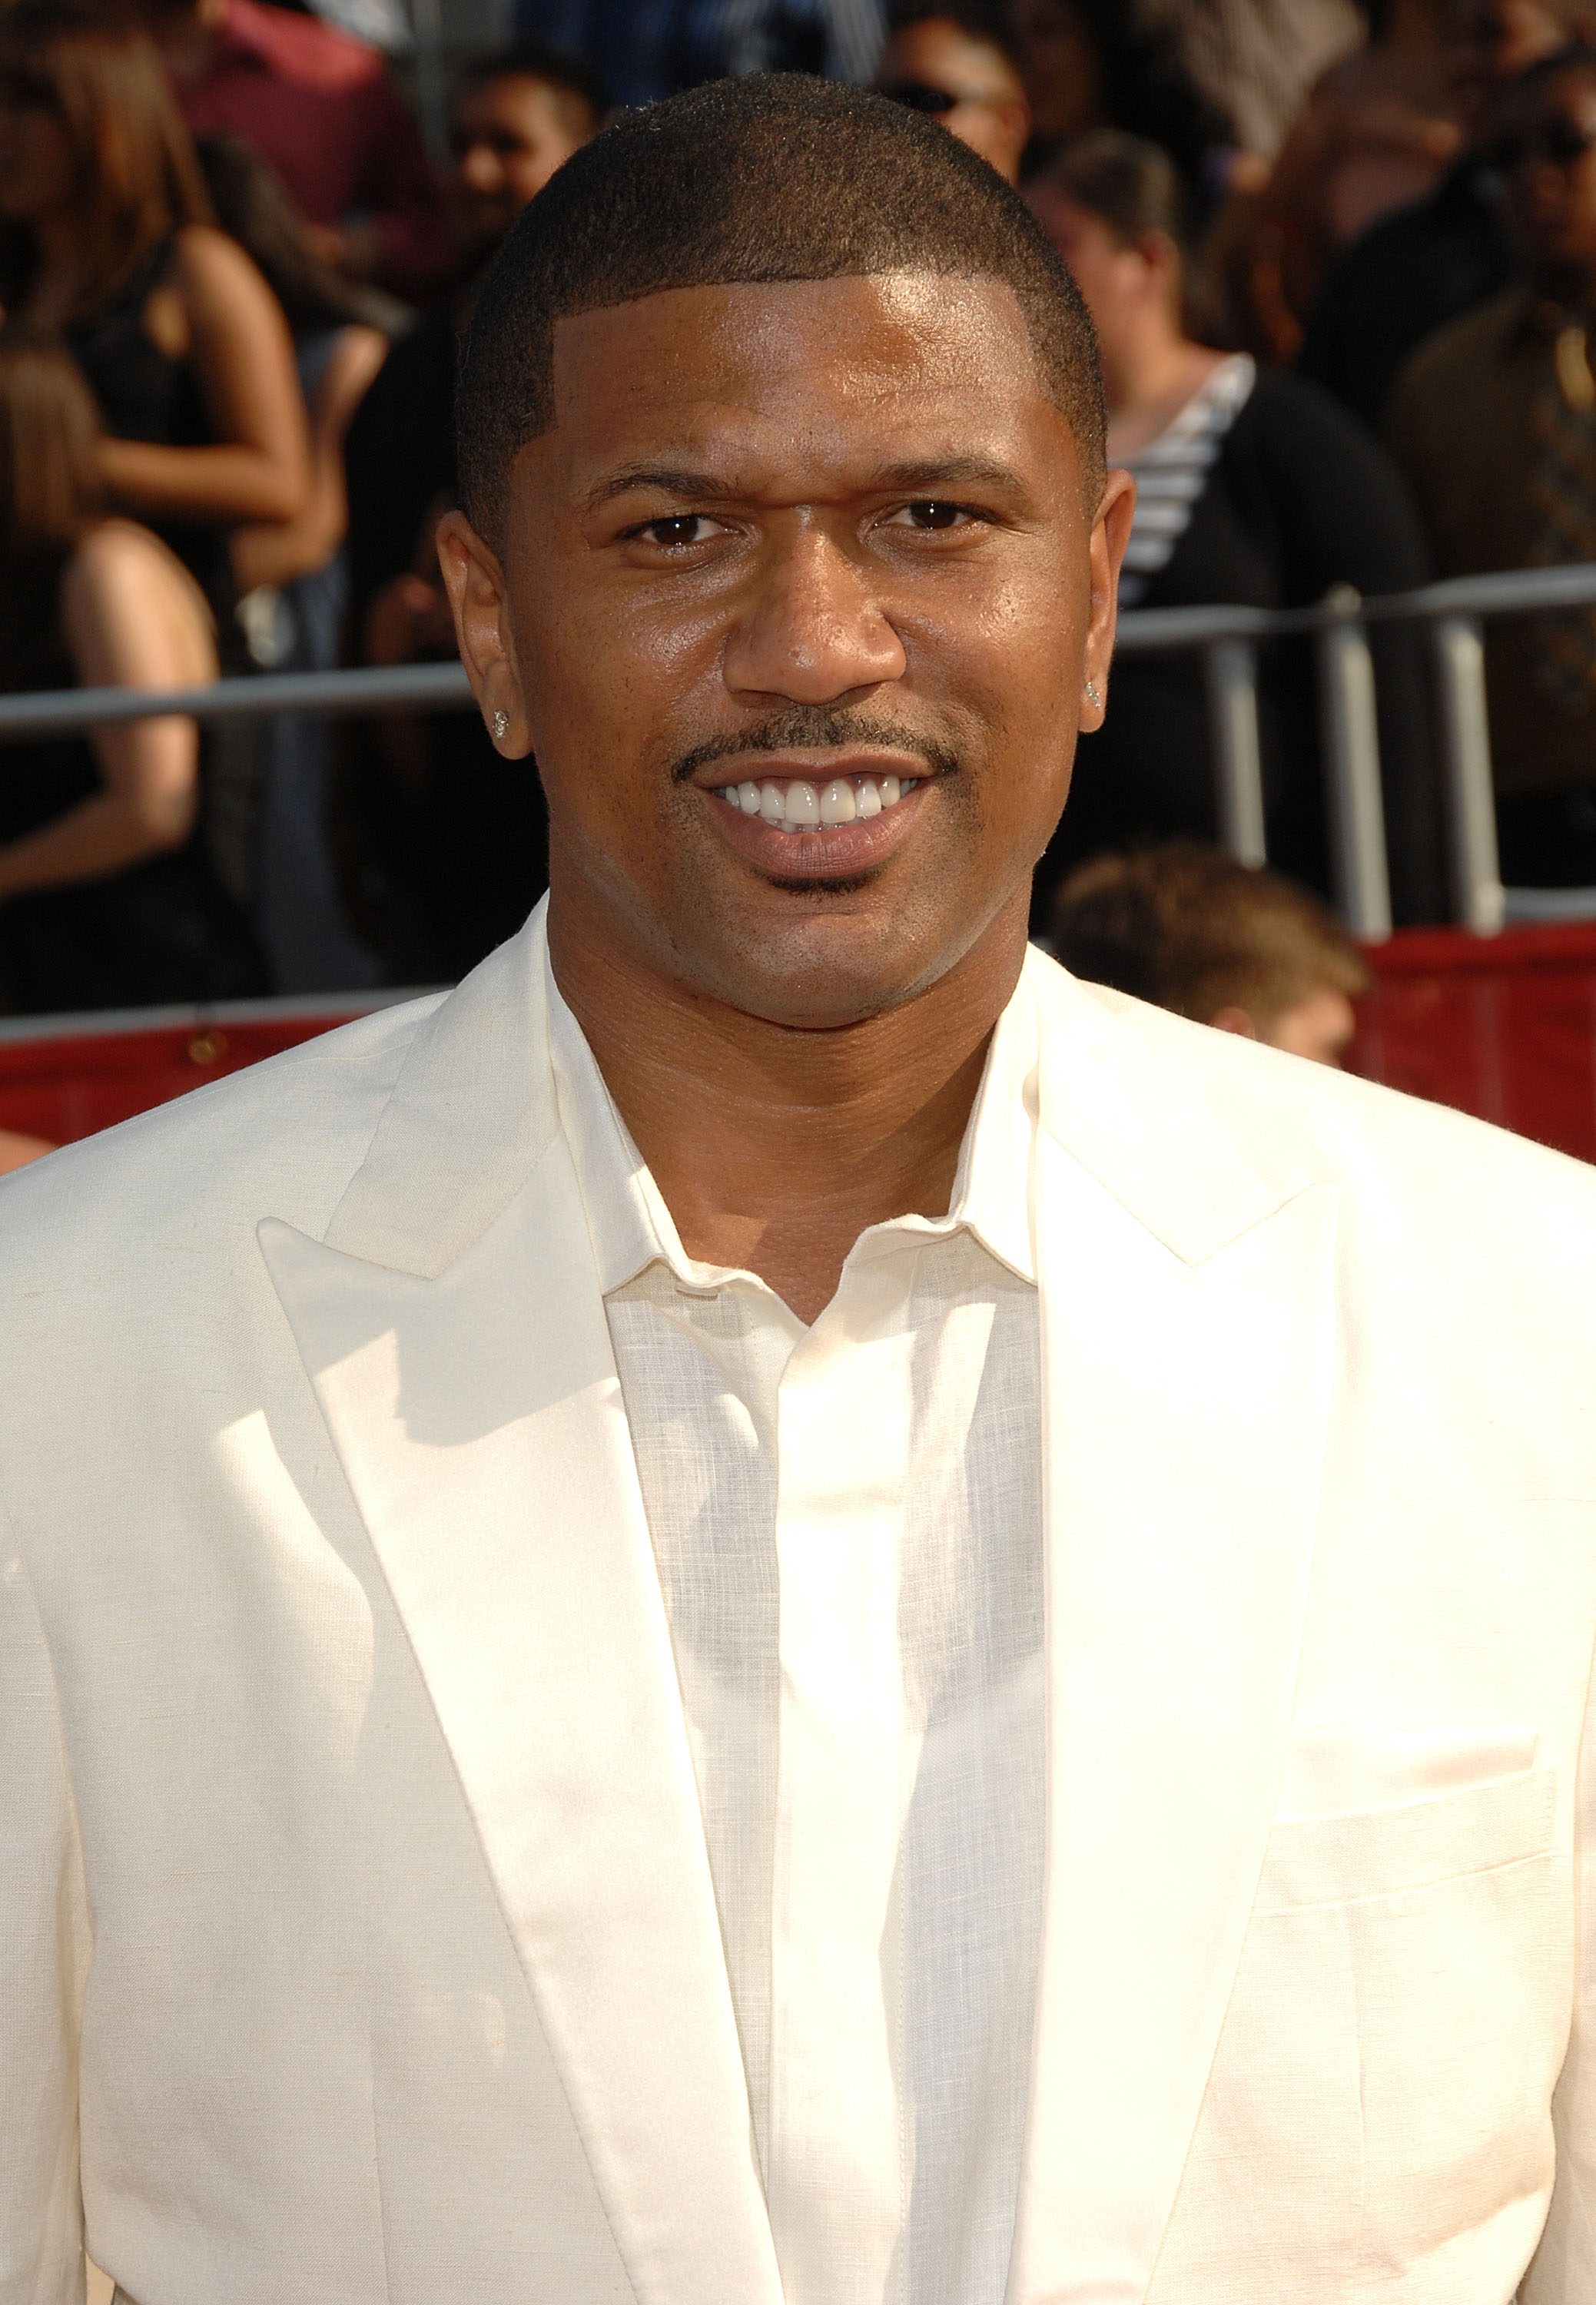 LOS ANGELES, CA - JULY 16:  Reitred NBA athlete Jalen Rose arrives at the 2008 ESPY Awards held at NOKIA Theatre L.A. LIVE on July 16, 2008 in Los Angeles, California.  The 2008 ESPYs will air on Sunday, July 20 at 9PM ET on ESPN.  (Photo by Stephen Shuge